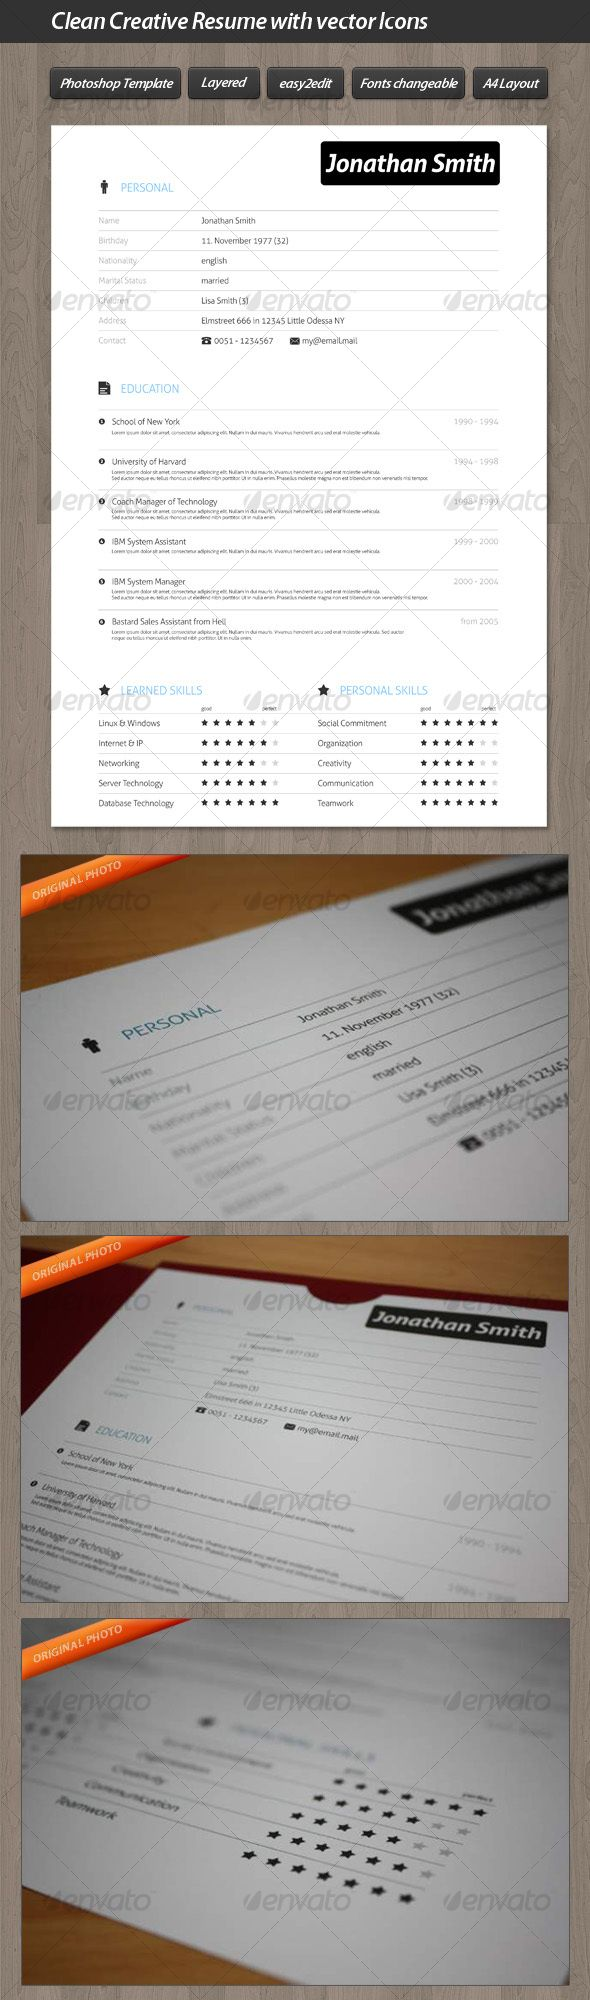 Clean Creative Resume with Vector Icons 39